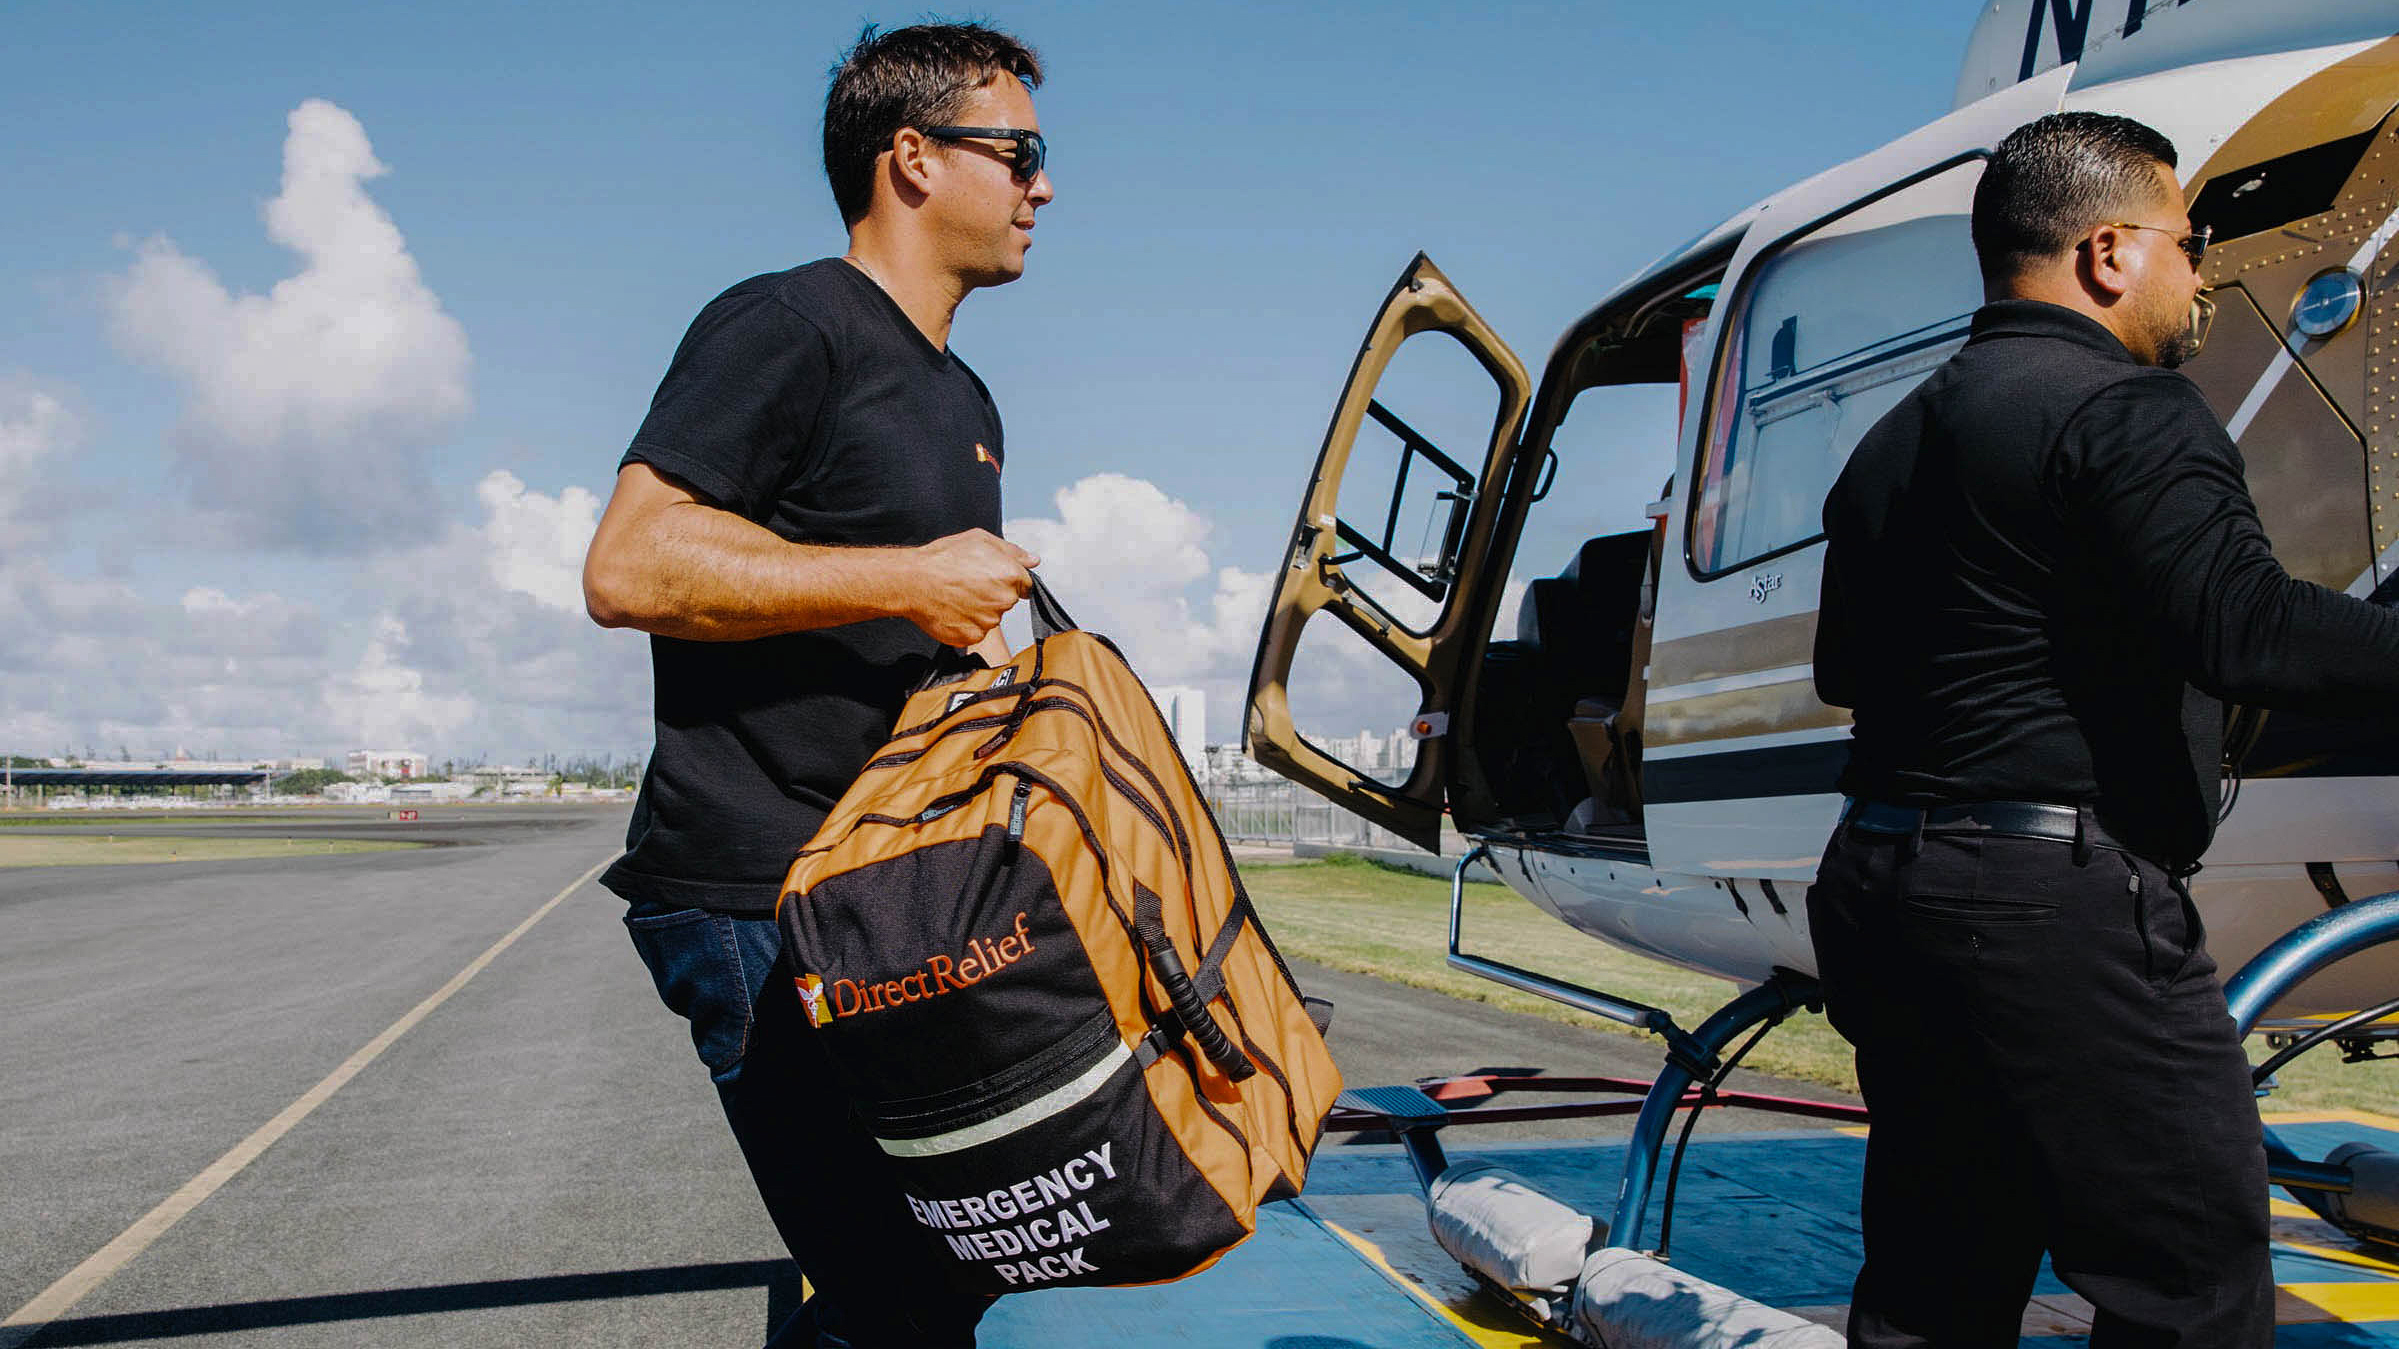 Direct Relief staff load Emergency Medical Backpacks onto a helicopter bound for Vieques, an island off Puerto Rico's eastern coast that was badly impacted by Hurricane Maria. A new agreement reached this week will put more packs in the hands of emergency first responders so they're ready in case of disaster. (Photo by Donnie Hedden for Direct Relief)